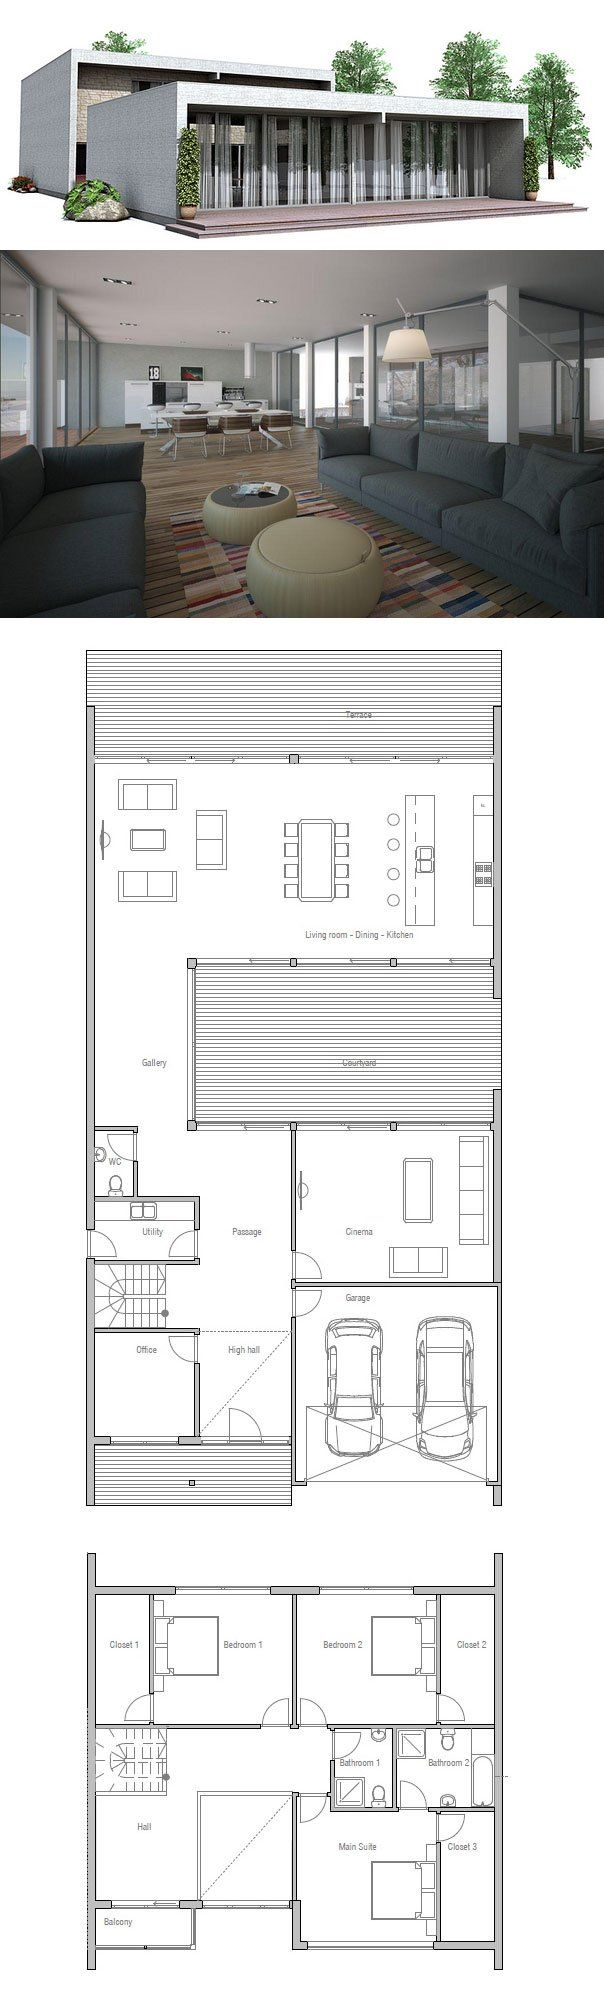 Modern Minimalist Narrow House. Floor Plan from ConceptHome.com